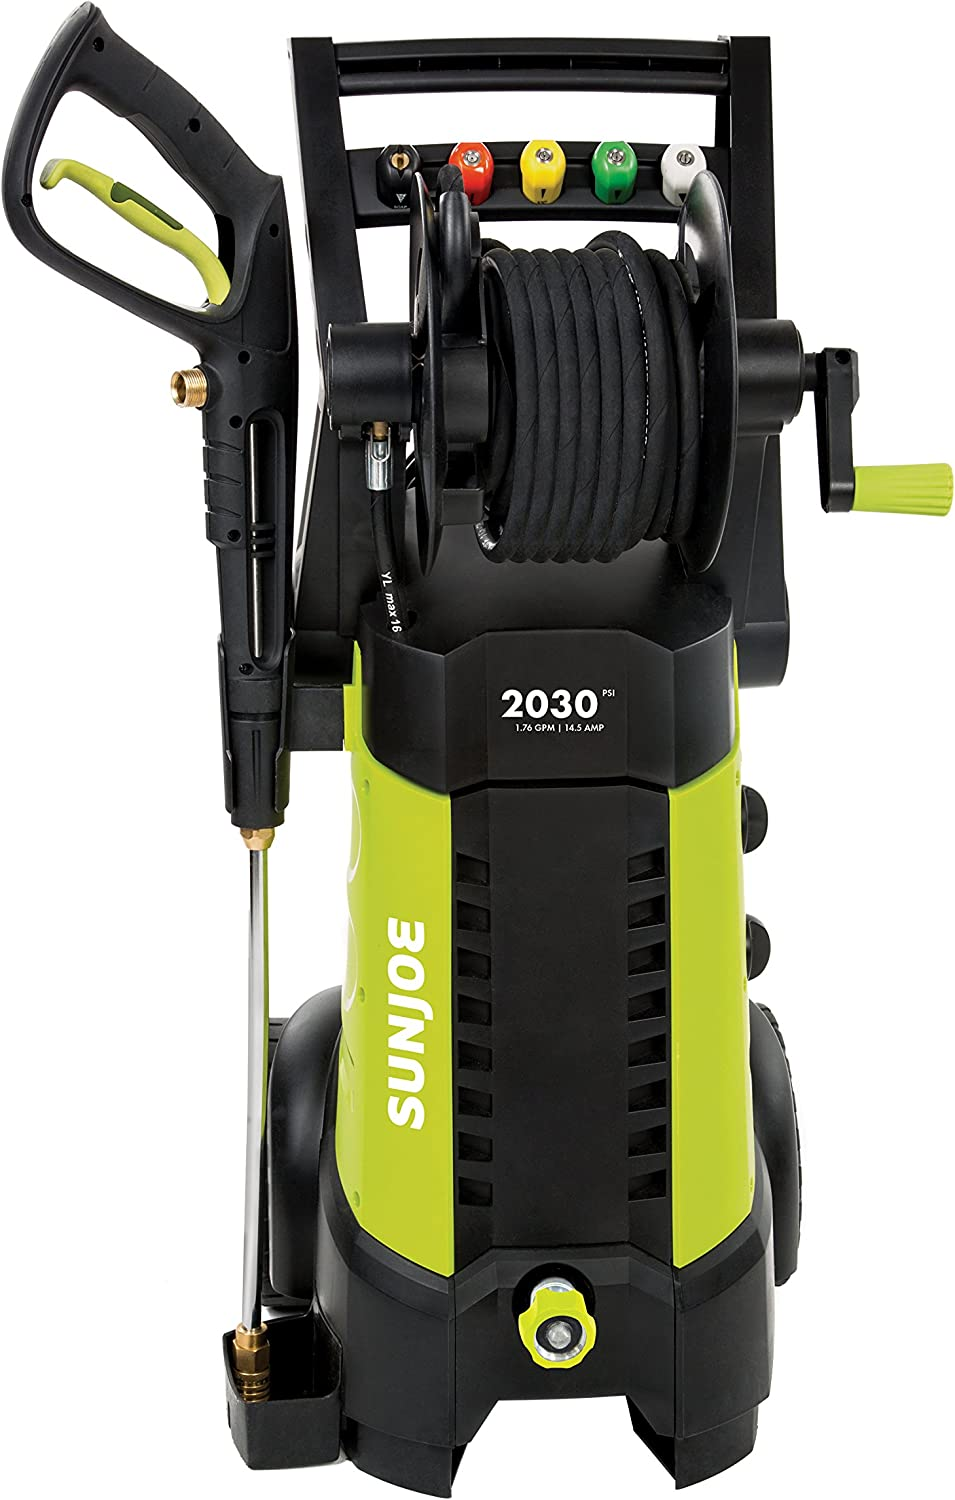 Amazon Com Sun Joe Spx3001 2030 Psi 1 76 Gpm 14 5 Amp Electric Pressure Washer With Hose Reel Green Garden Outdoor